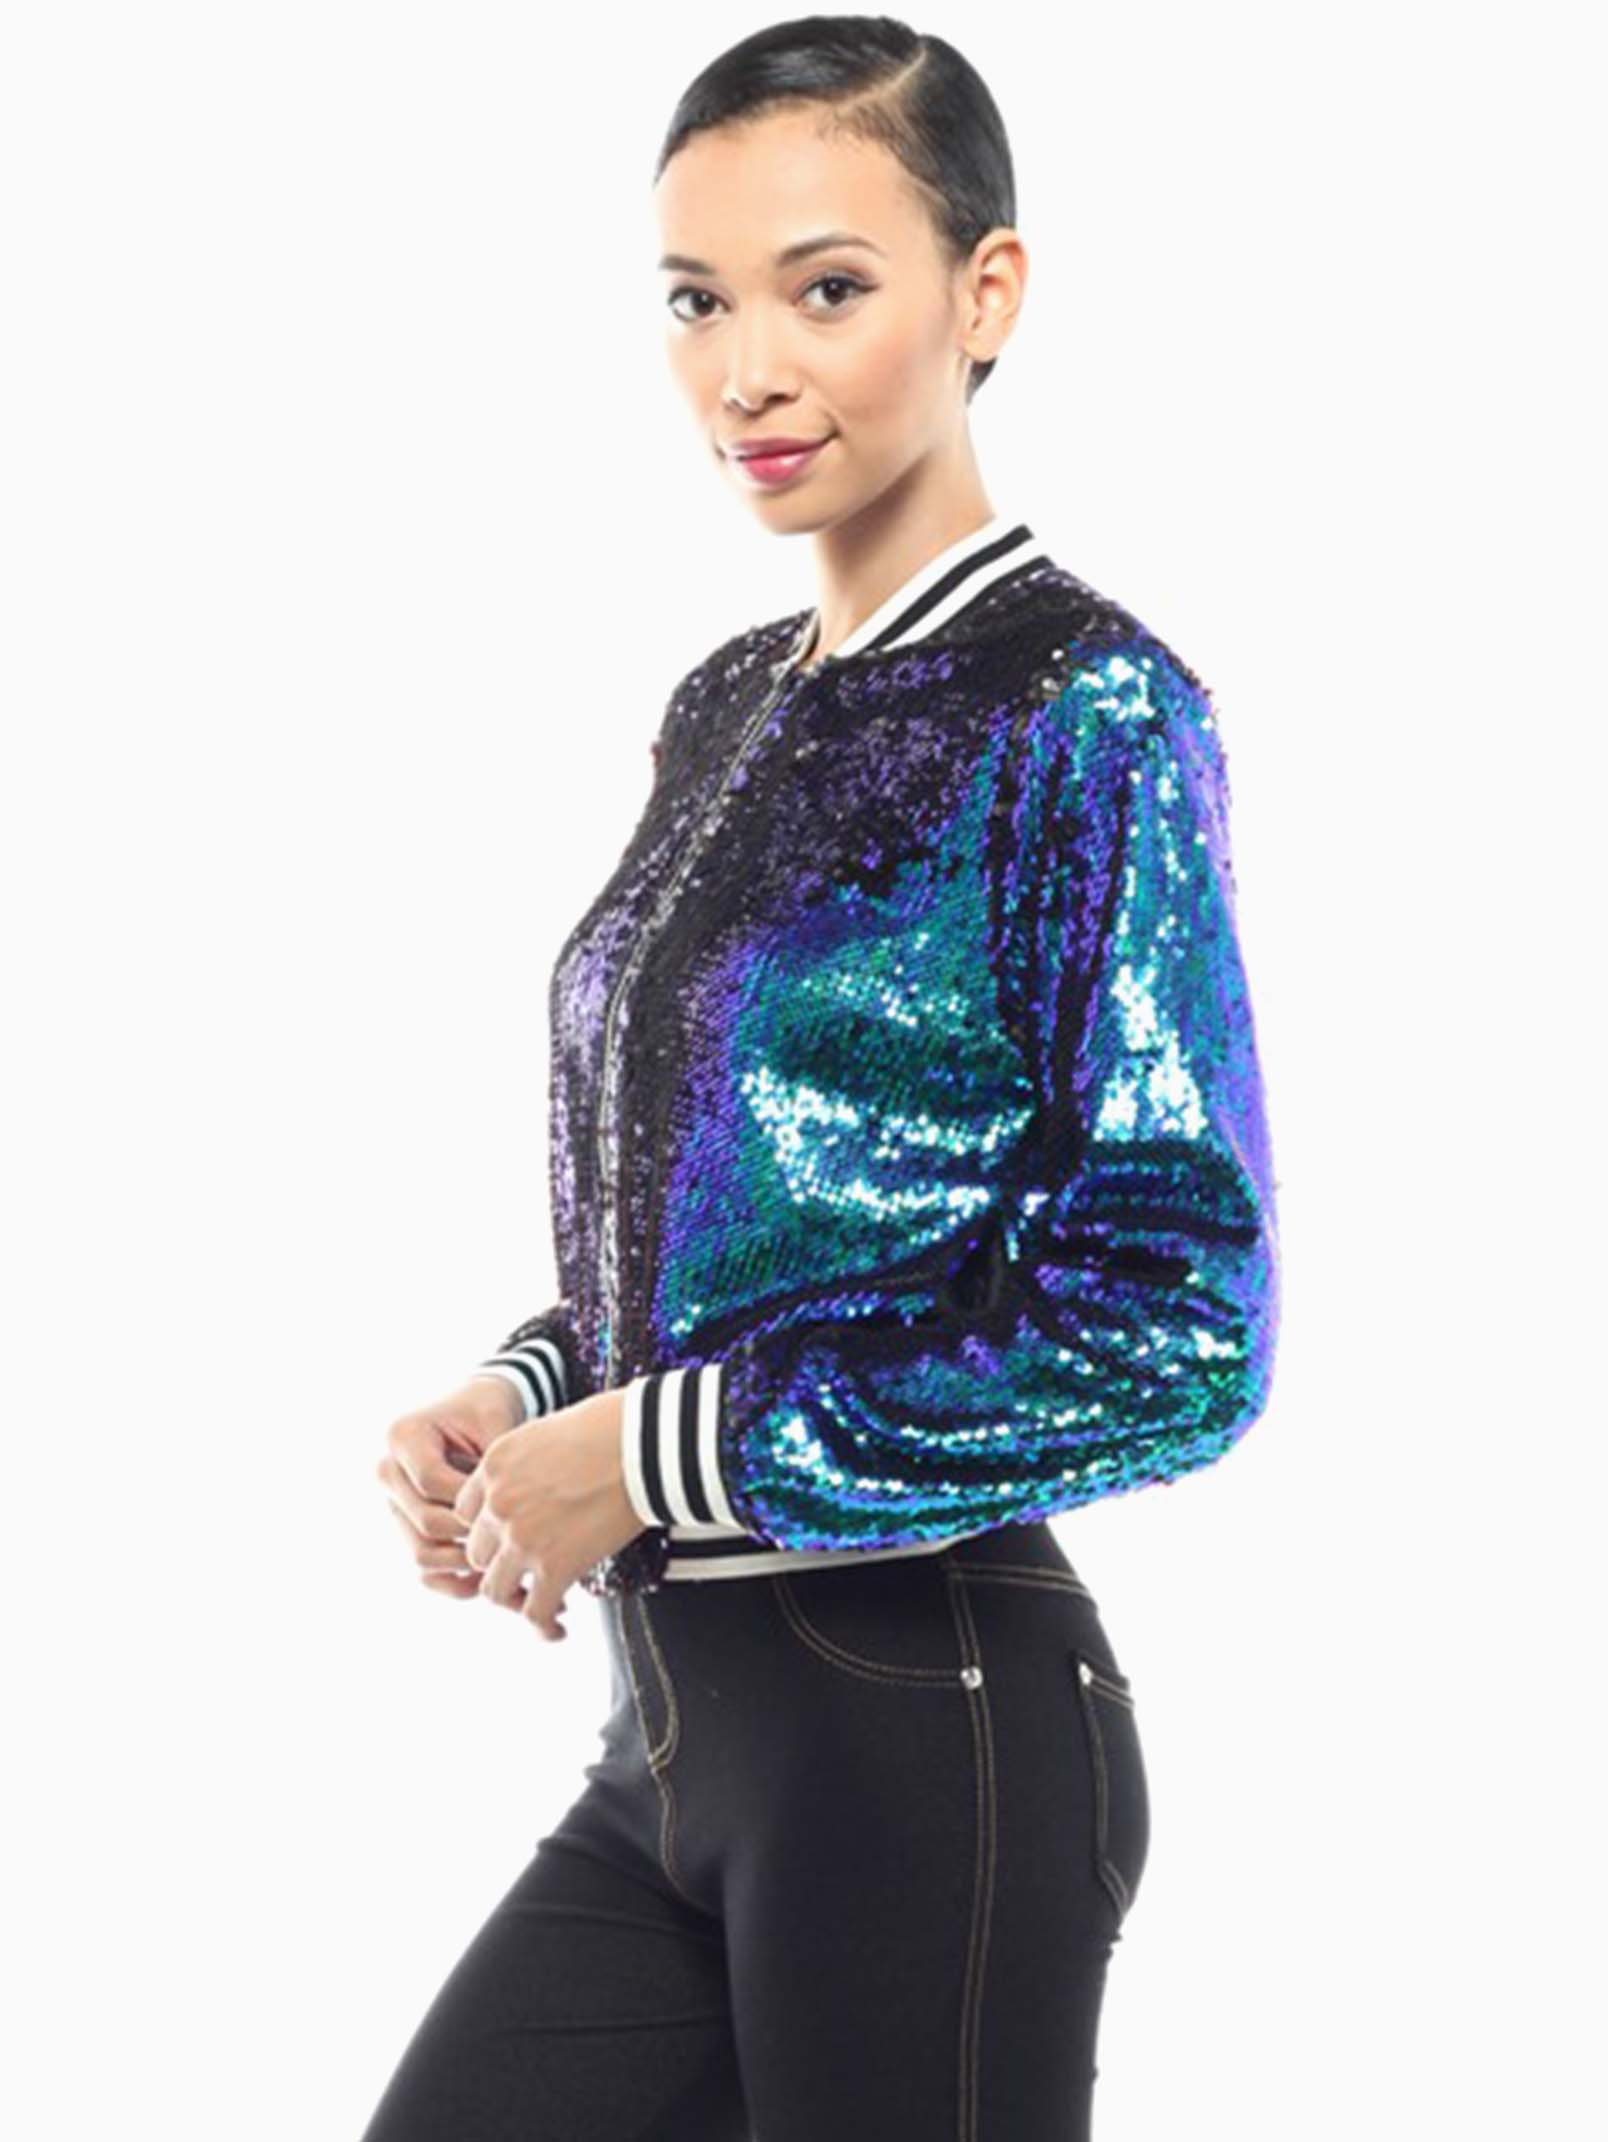 Get the best deals on black sequin jacket forever 21 and save up to 70% off at Poshmark now! Whatever you're shopping for, we've got it.